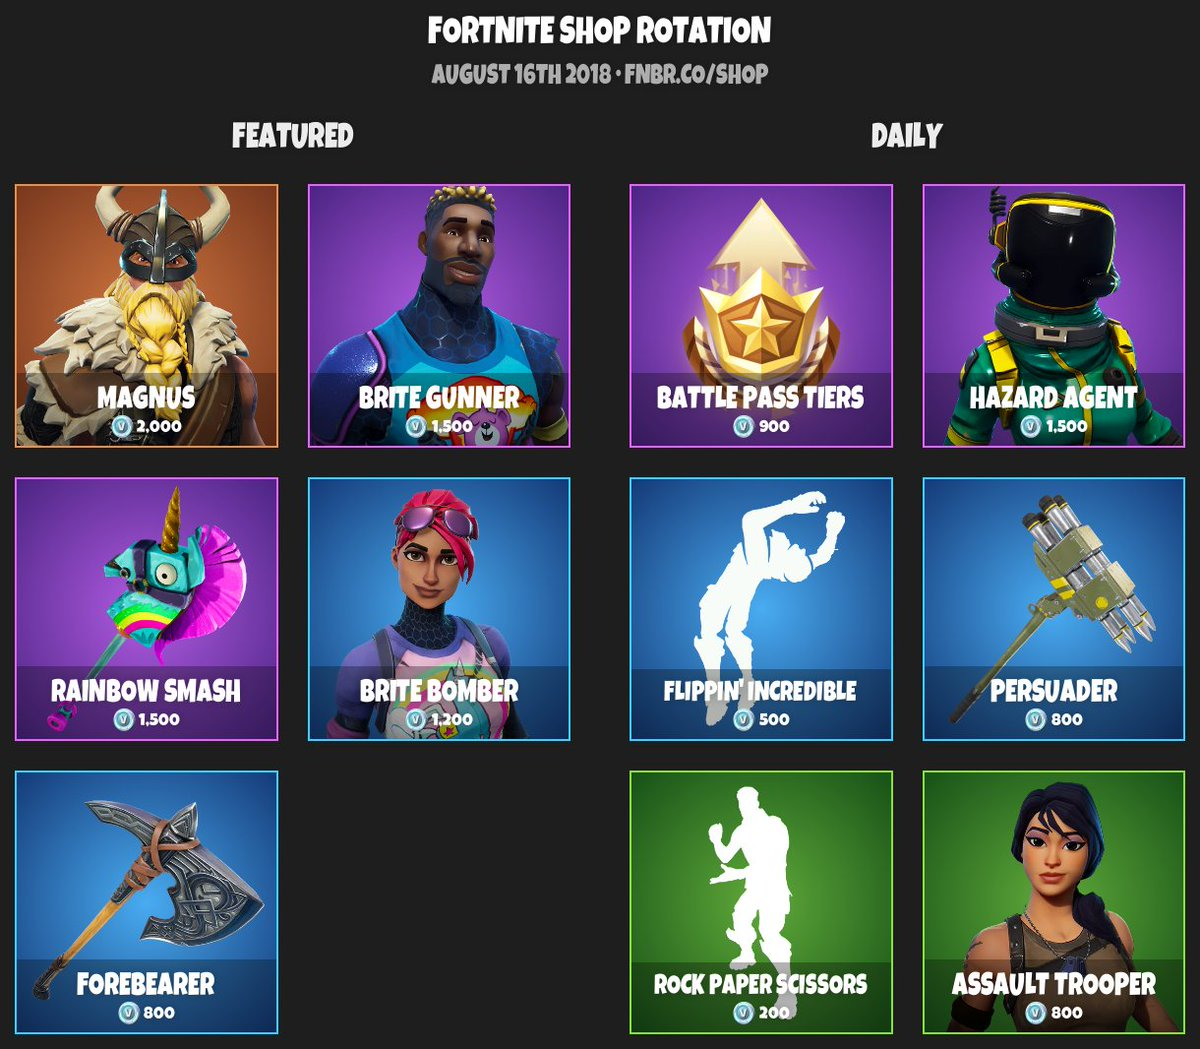 Fortnite Item Shop News Updates On Twitter Fortnite Item Shop